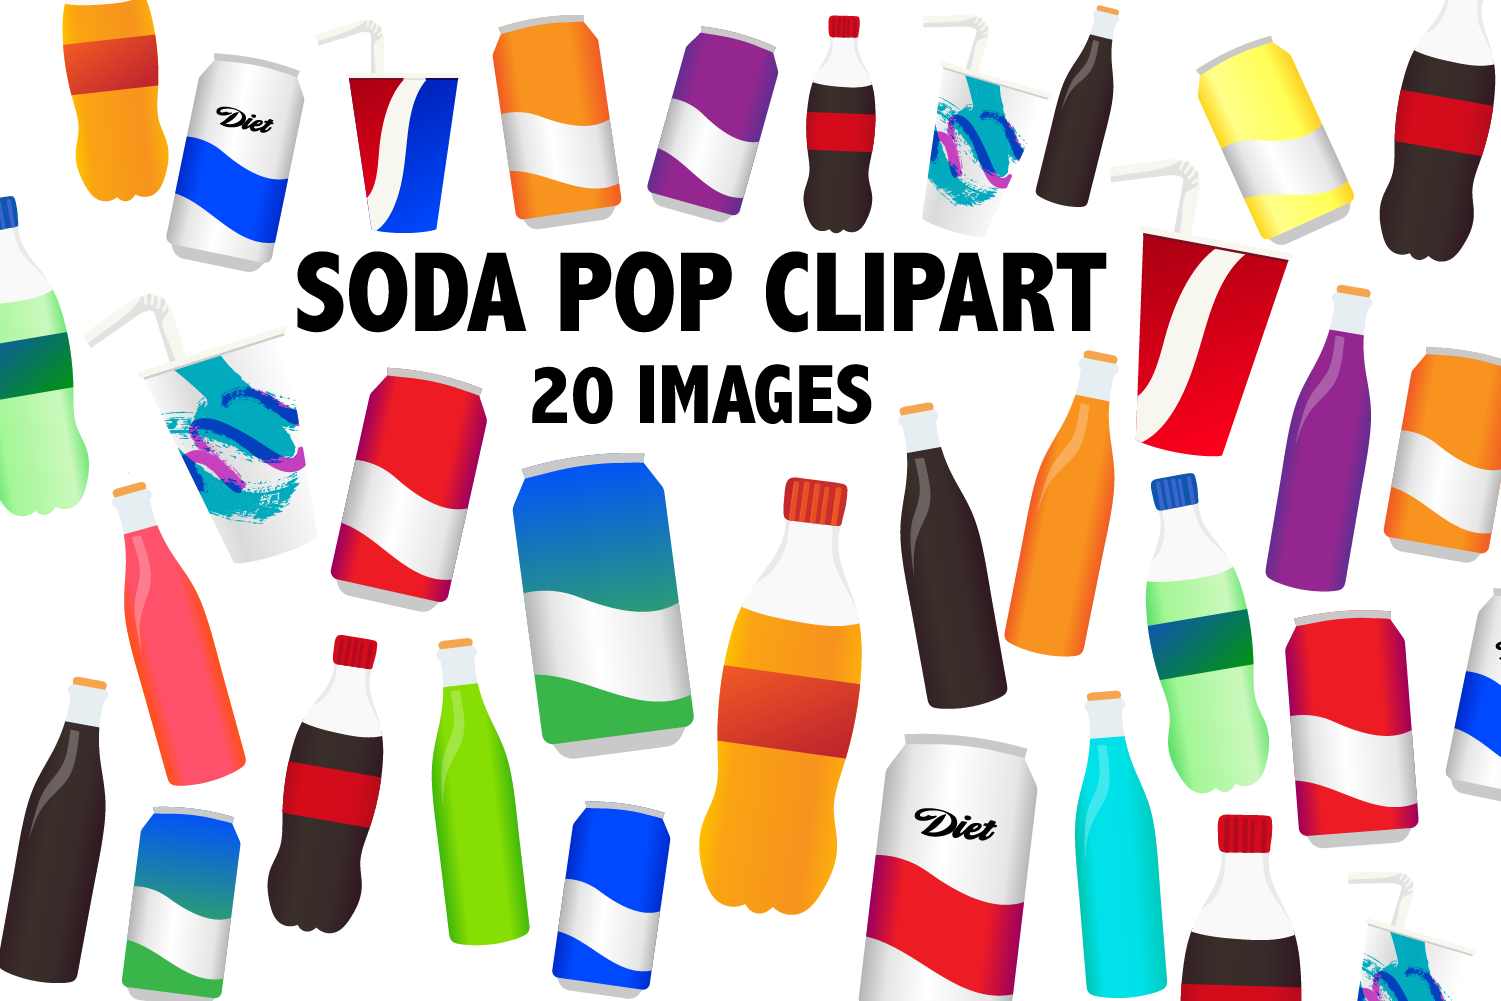 Soda Pop Clipart example image 1